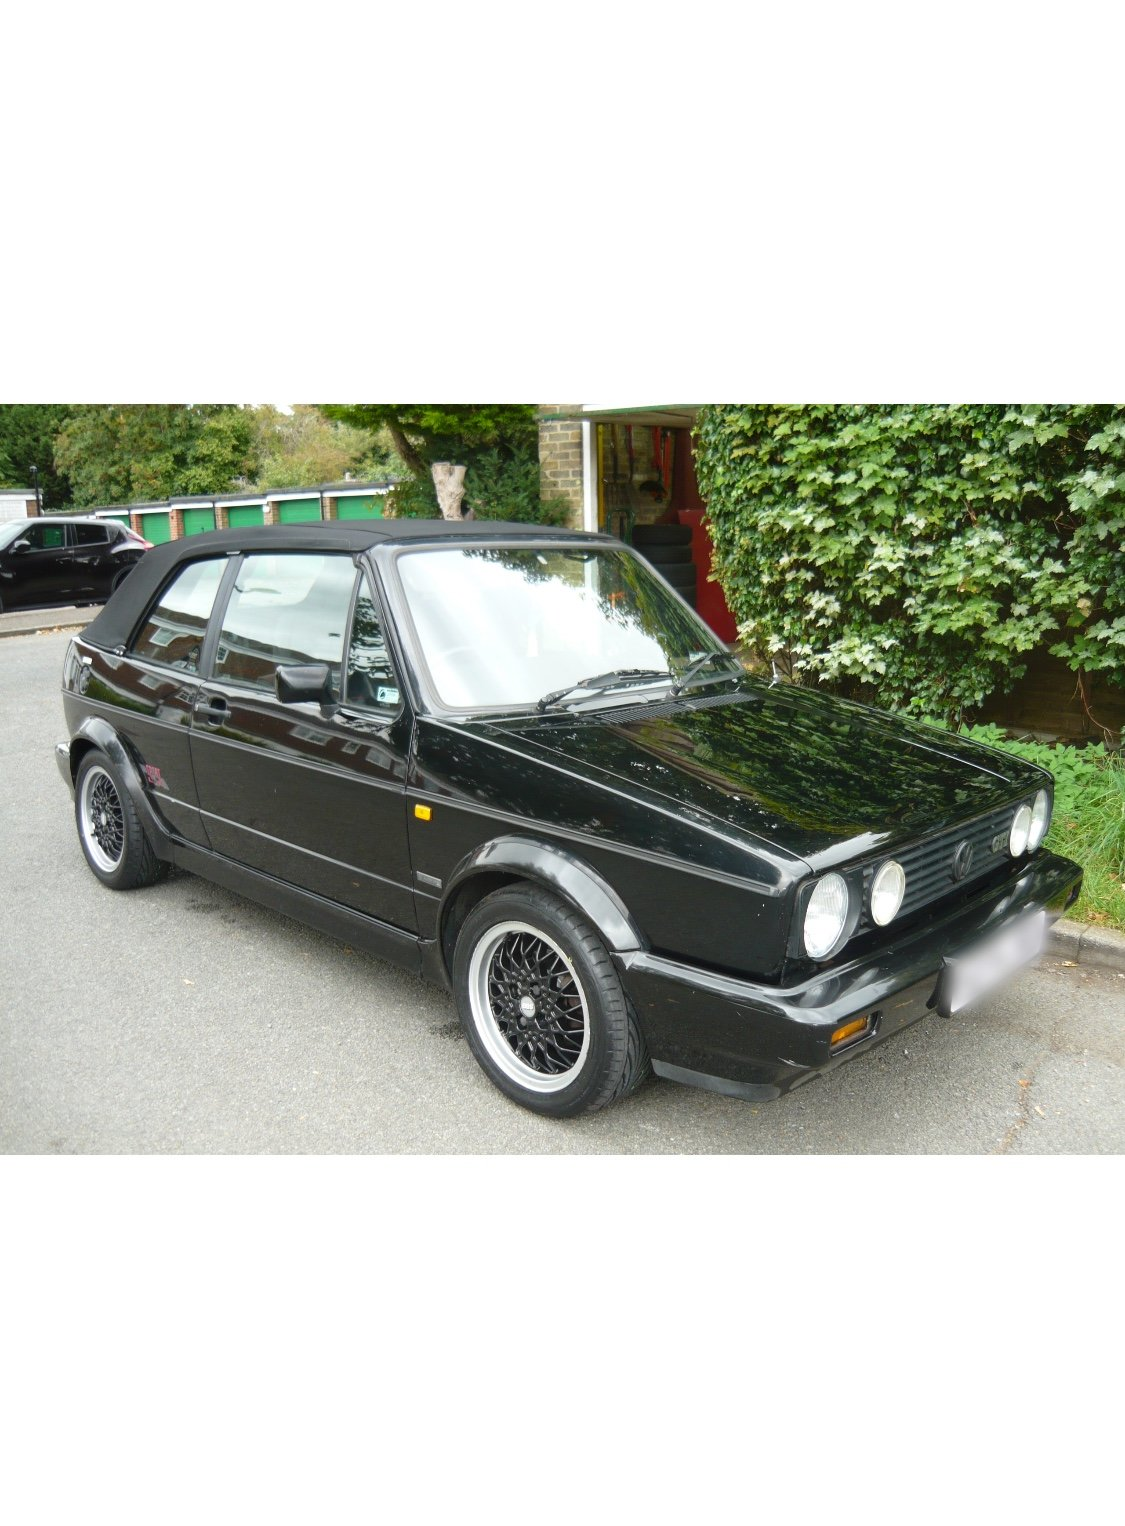 1991 VW GOLF GTI SPORTLINE  For Sale (picture 3 of 6)